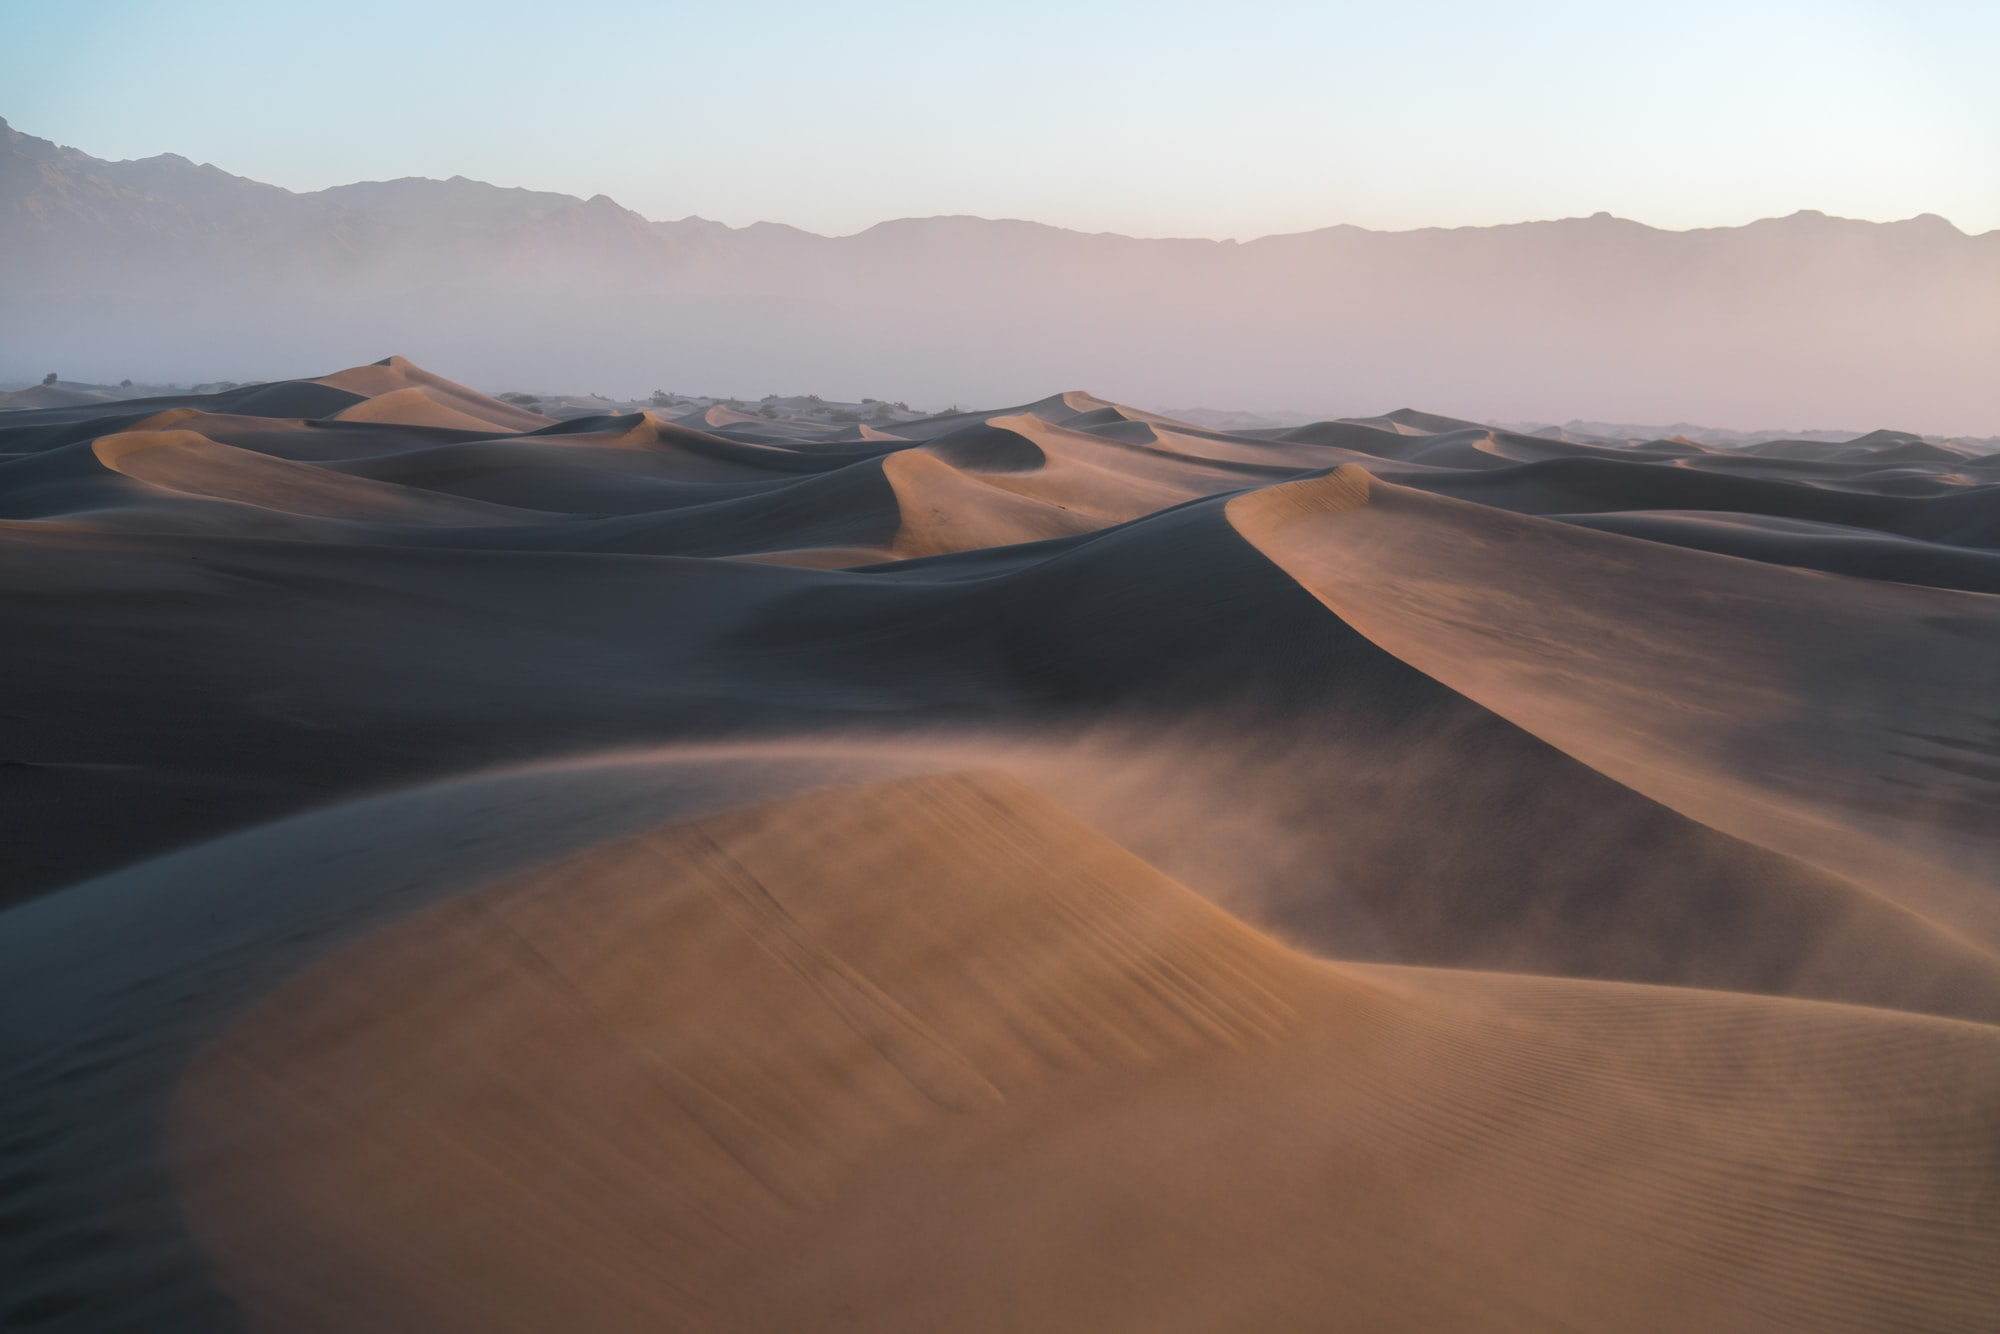 I found myself trekking through the dunes in the middle of 33MPH winds. It was early in the morning when the winds were less violent, but when the sunrise hit the winds took a drastic change for the worse.